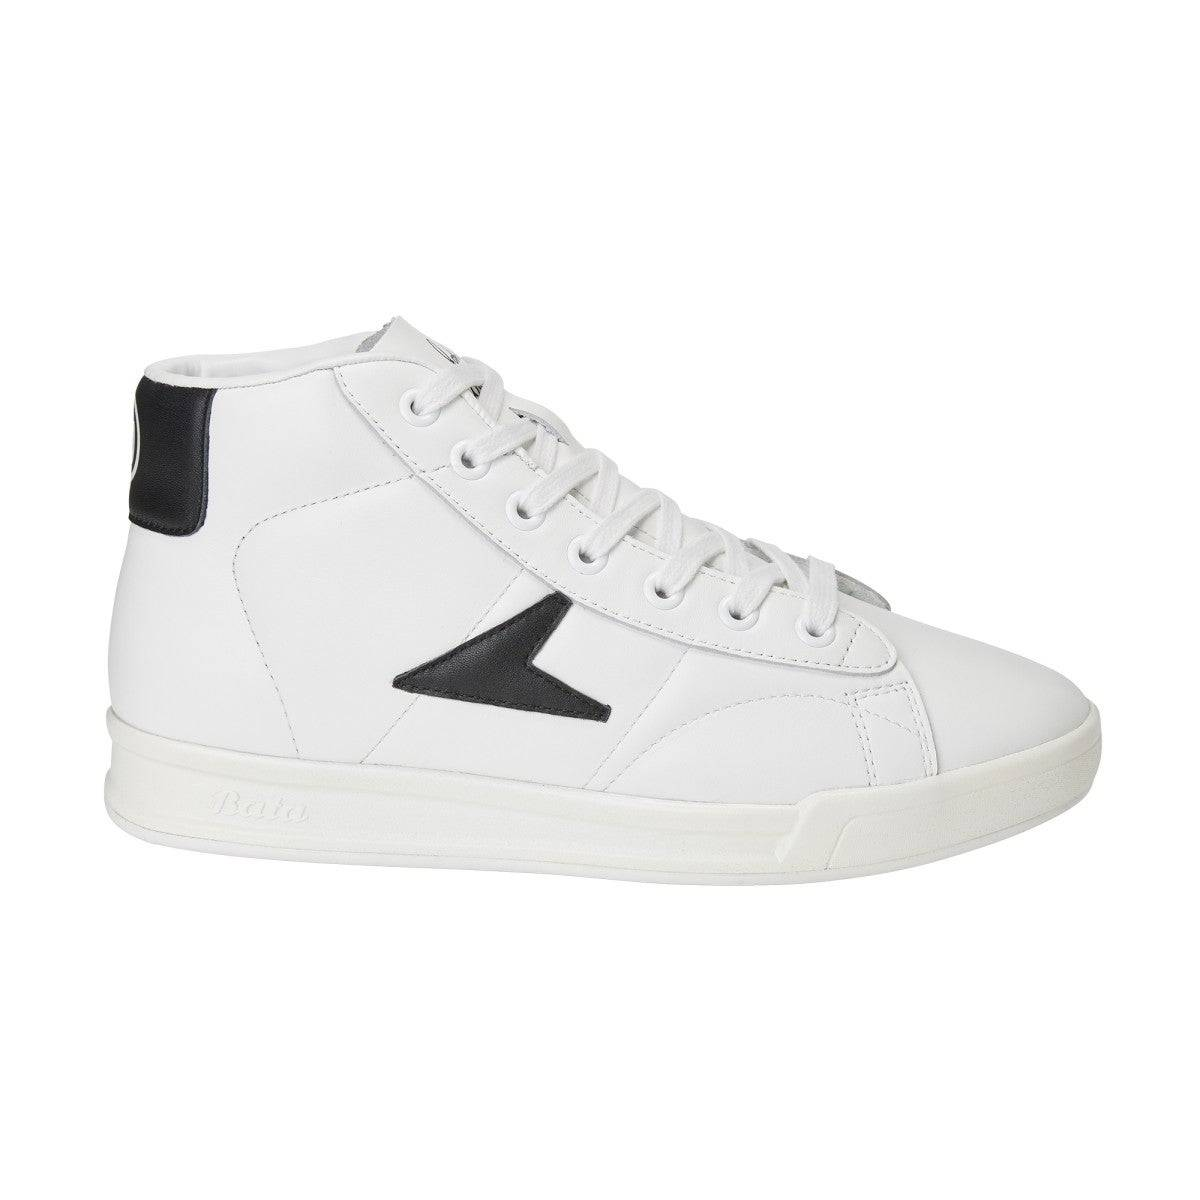 Wilson John Wooden Classic High Top Shoes in White / Black - Size: 5 M  - Unisex - White/Black - Size: 5 M